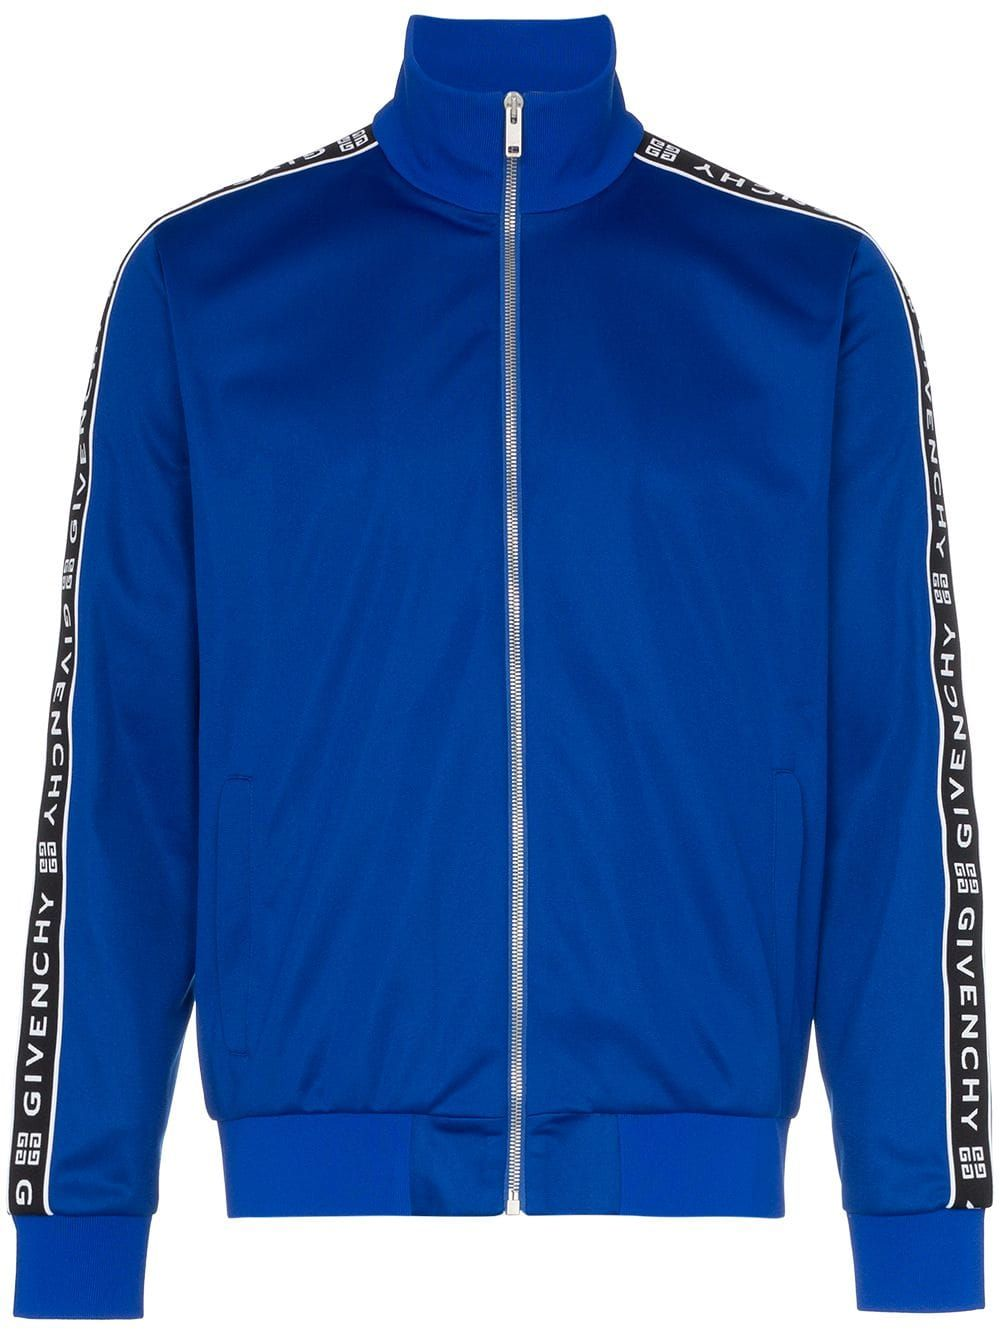 13f550eb0 GIVENCHY GIVENCHY LOGO STRIPE TRACK JACKET - BLUE.  givenchy  cloth ...